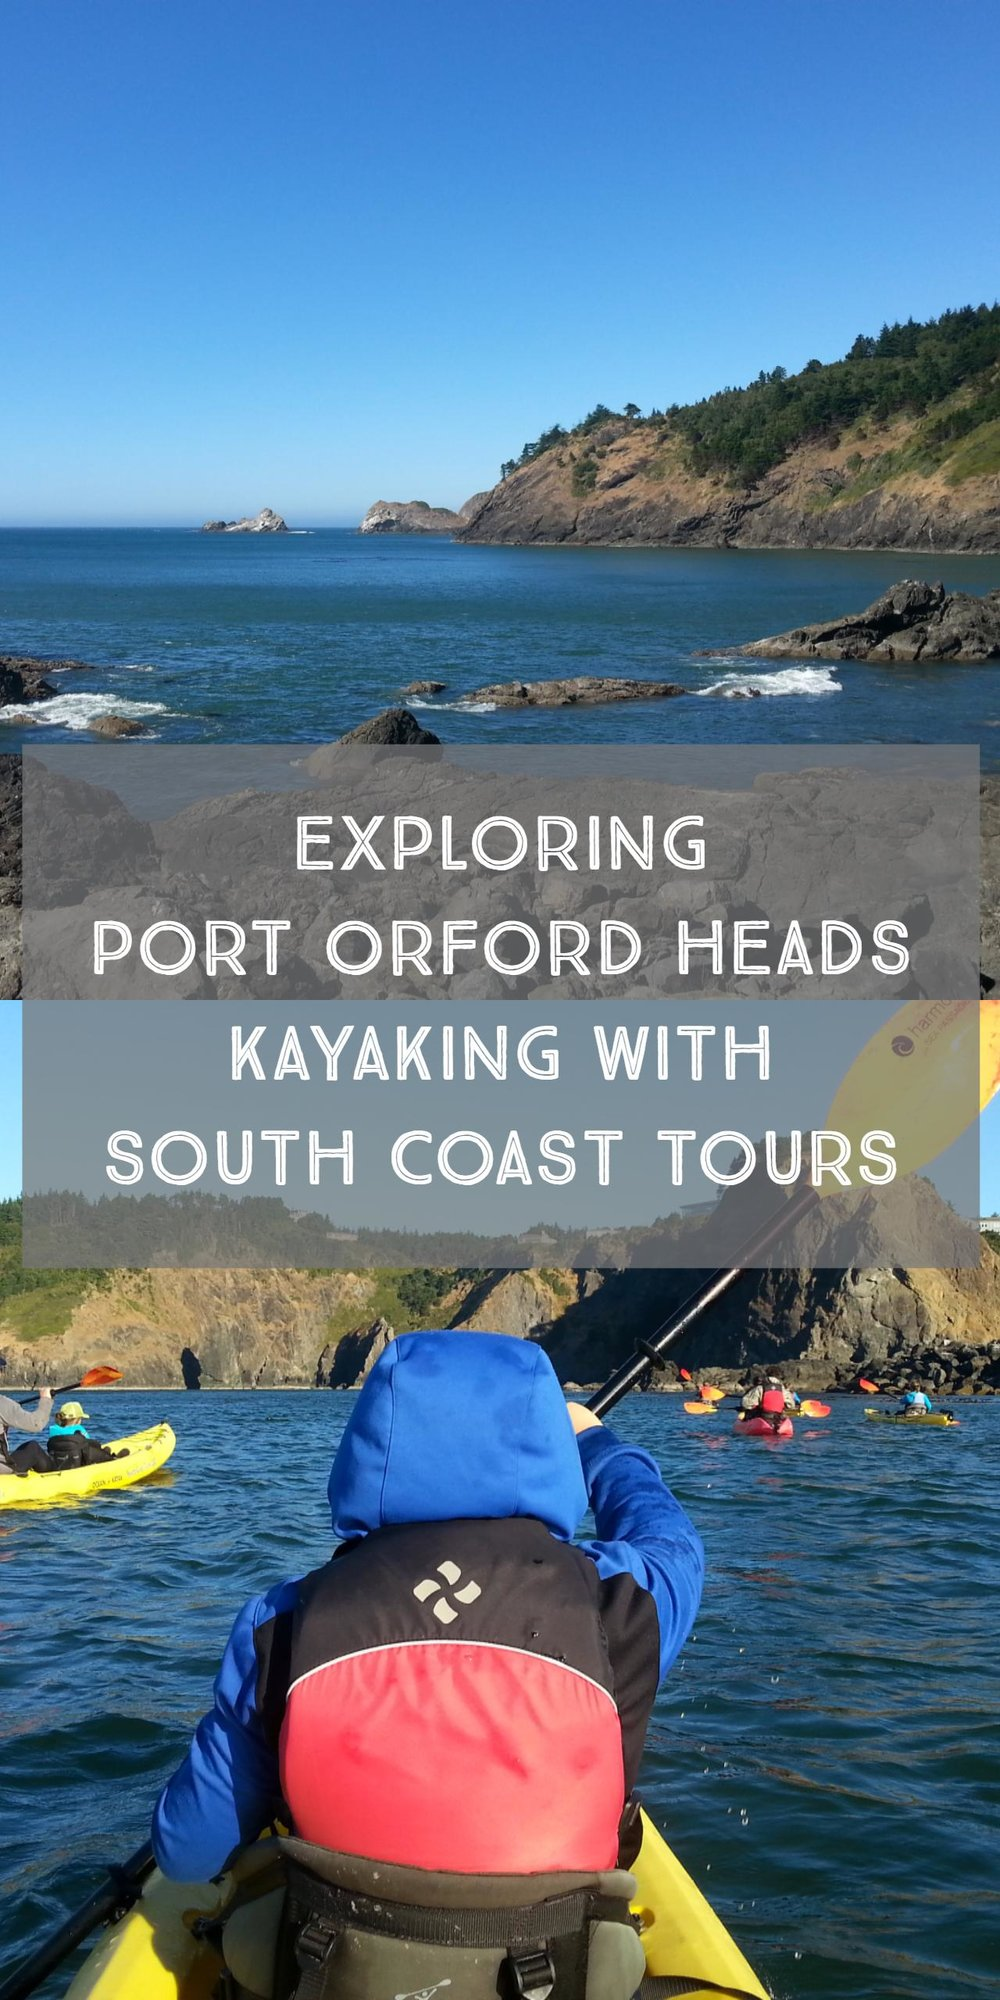 EXPLORING PORT ORFORD HEADS KAYAKING WITH SOUTH COAST TOURS